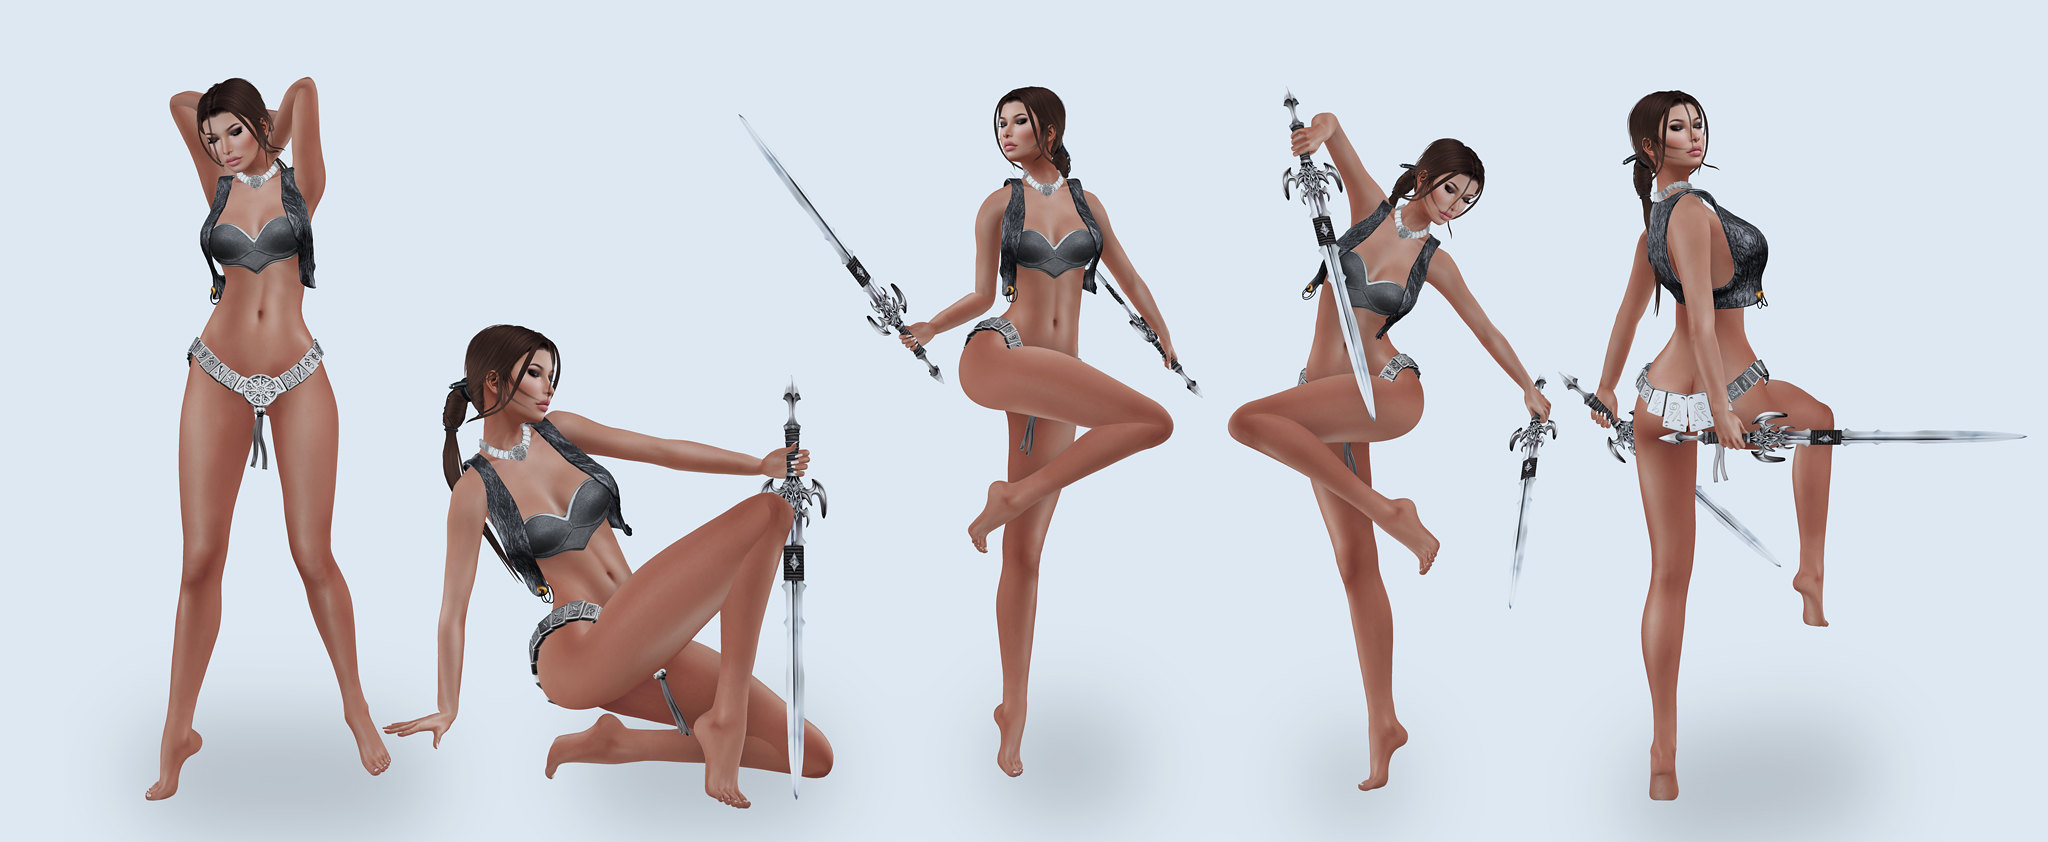 NRage Studio Poses! @ Illusion Point- Monthly Fantasy Shopping